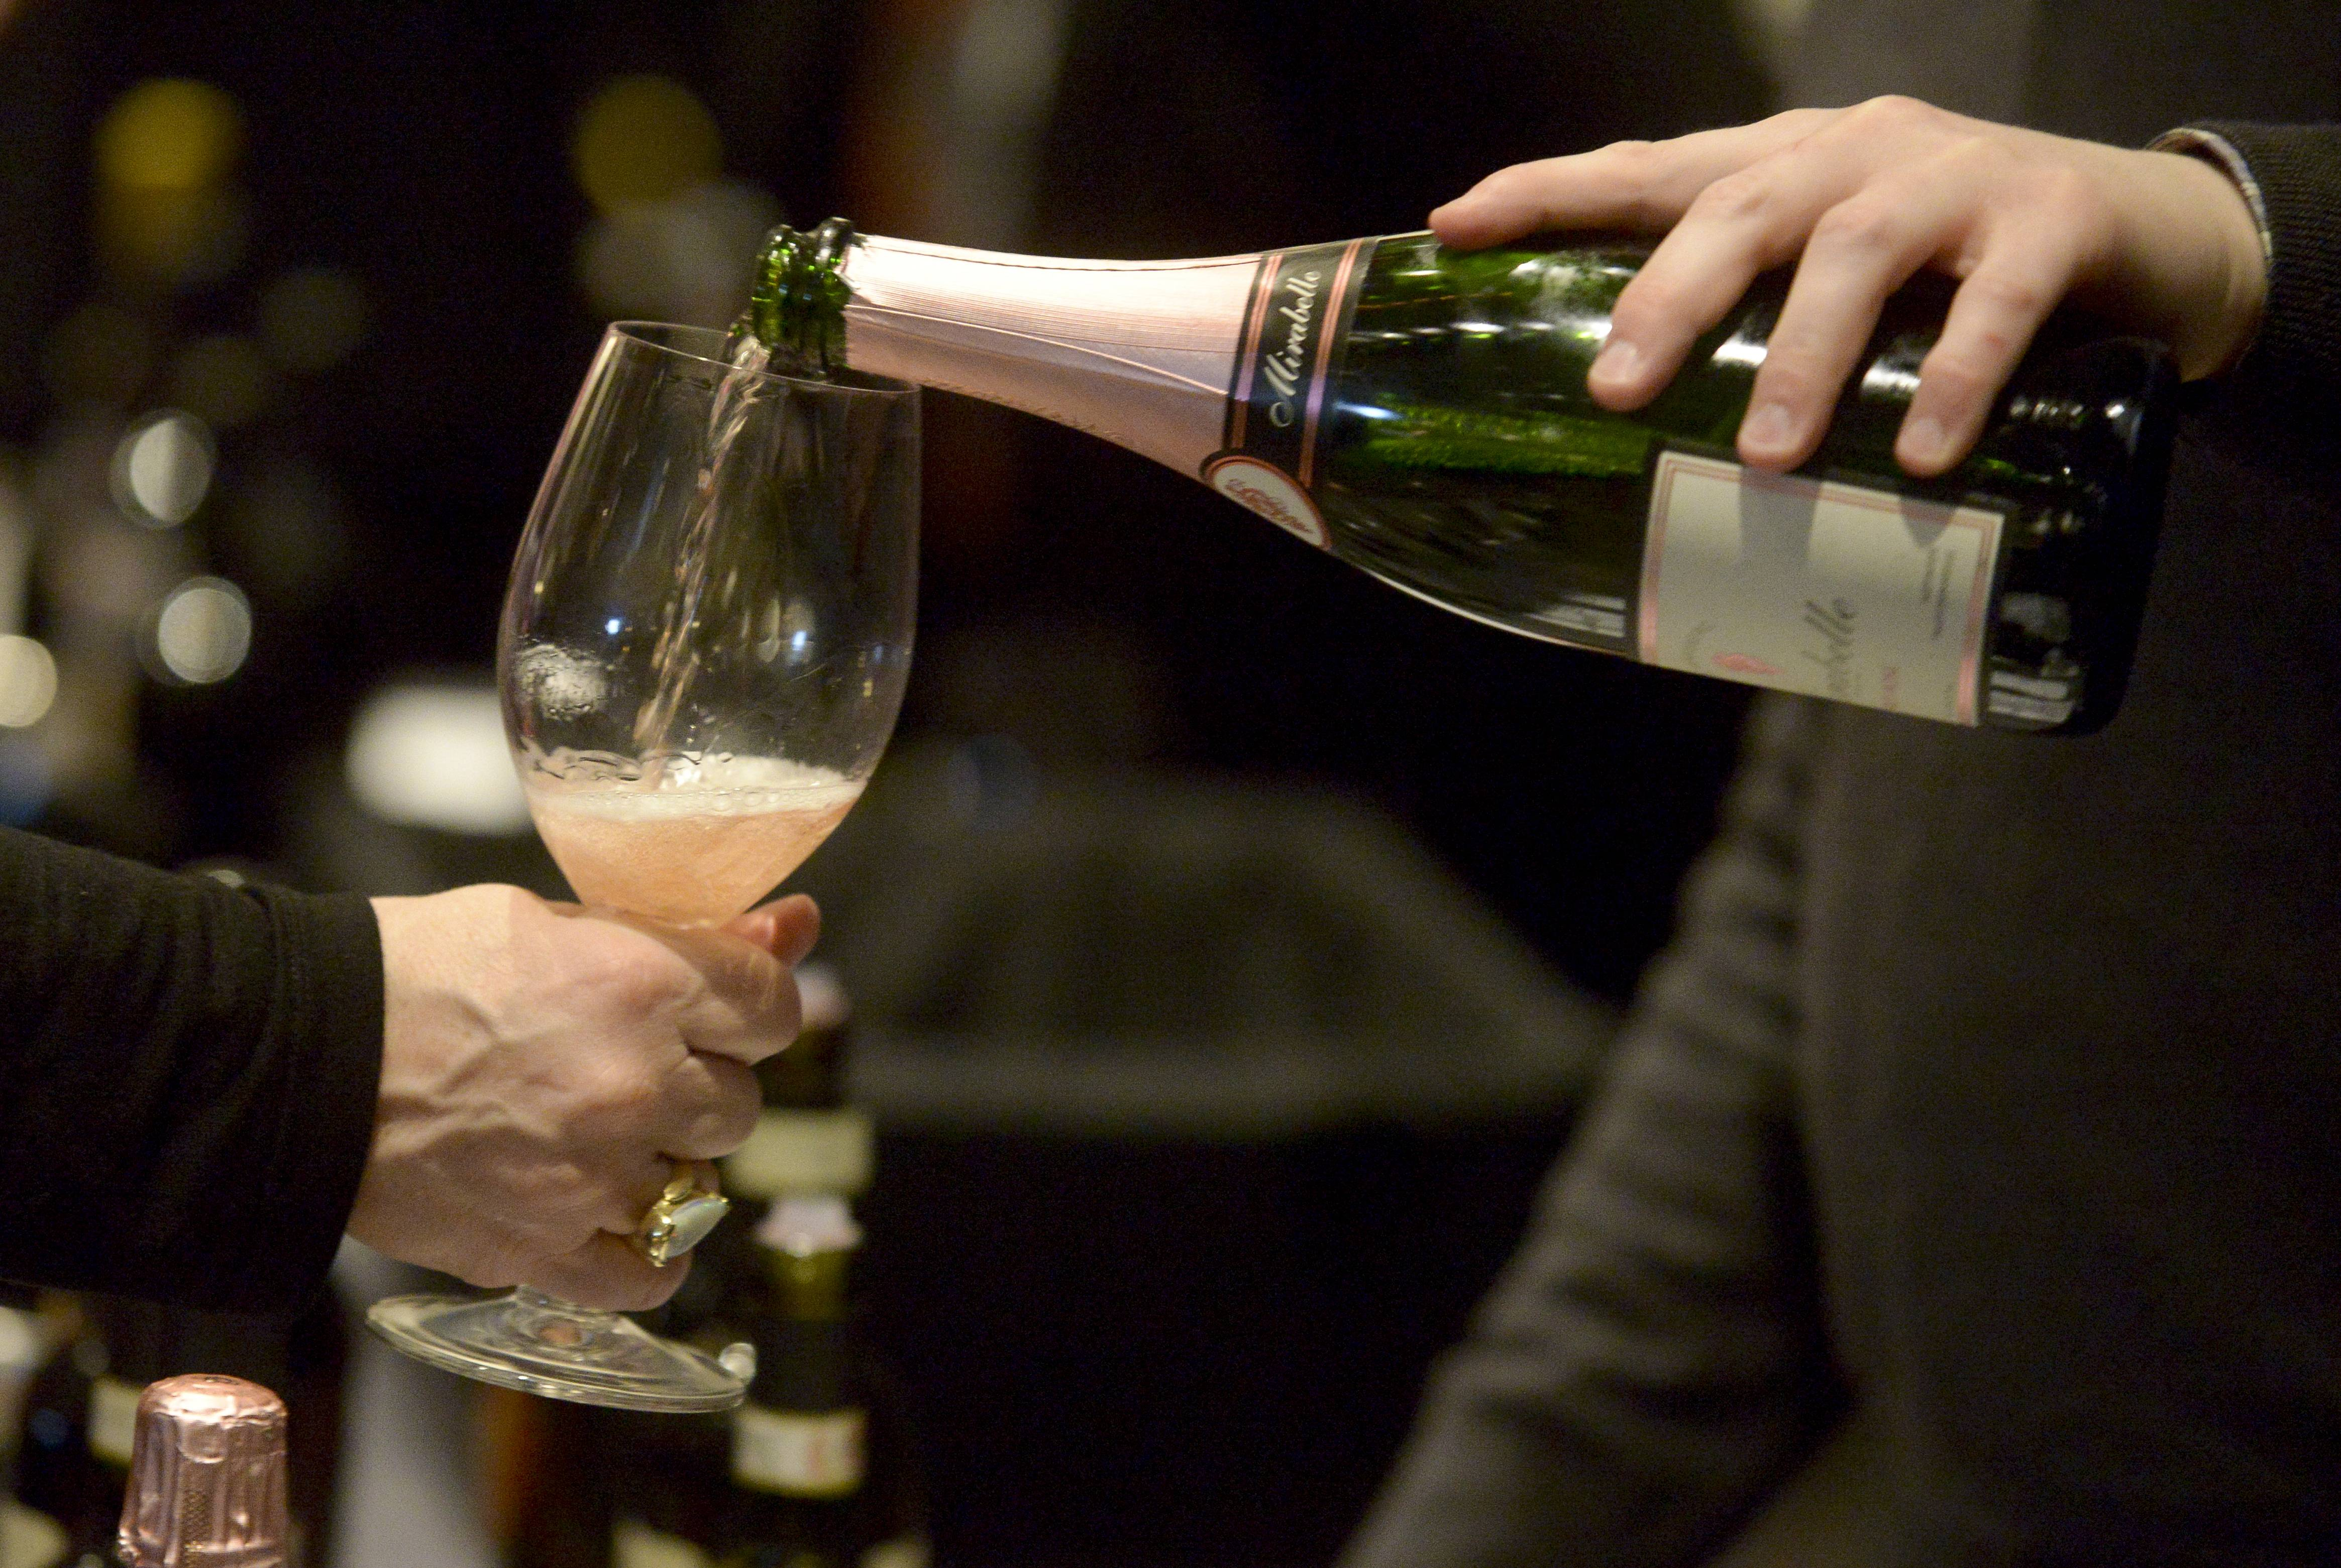 A Schramsberg Mirabelle sparkling wine is poured during the Naperville Winter Wine Festival at the Hotel Arista in Naperville. A portion of proceeds from the event was donated to DuPage PADS.